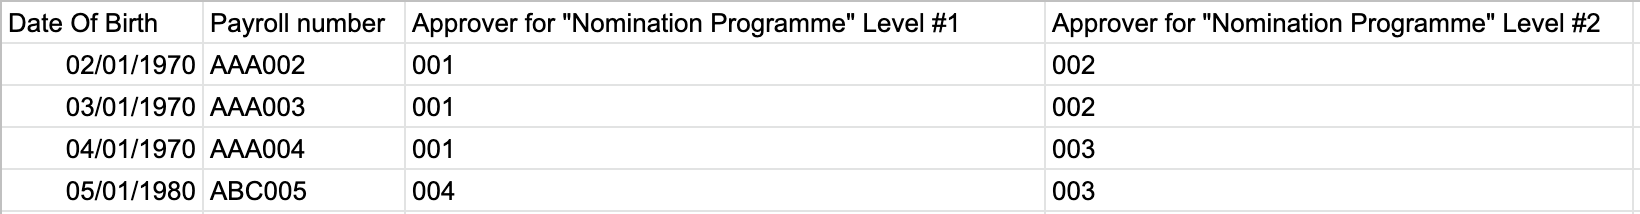 1_programme_2_levels.png